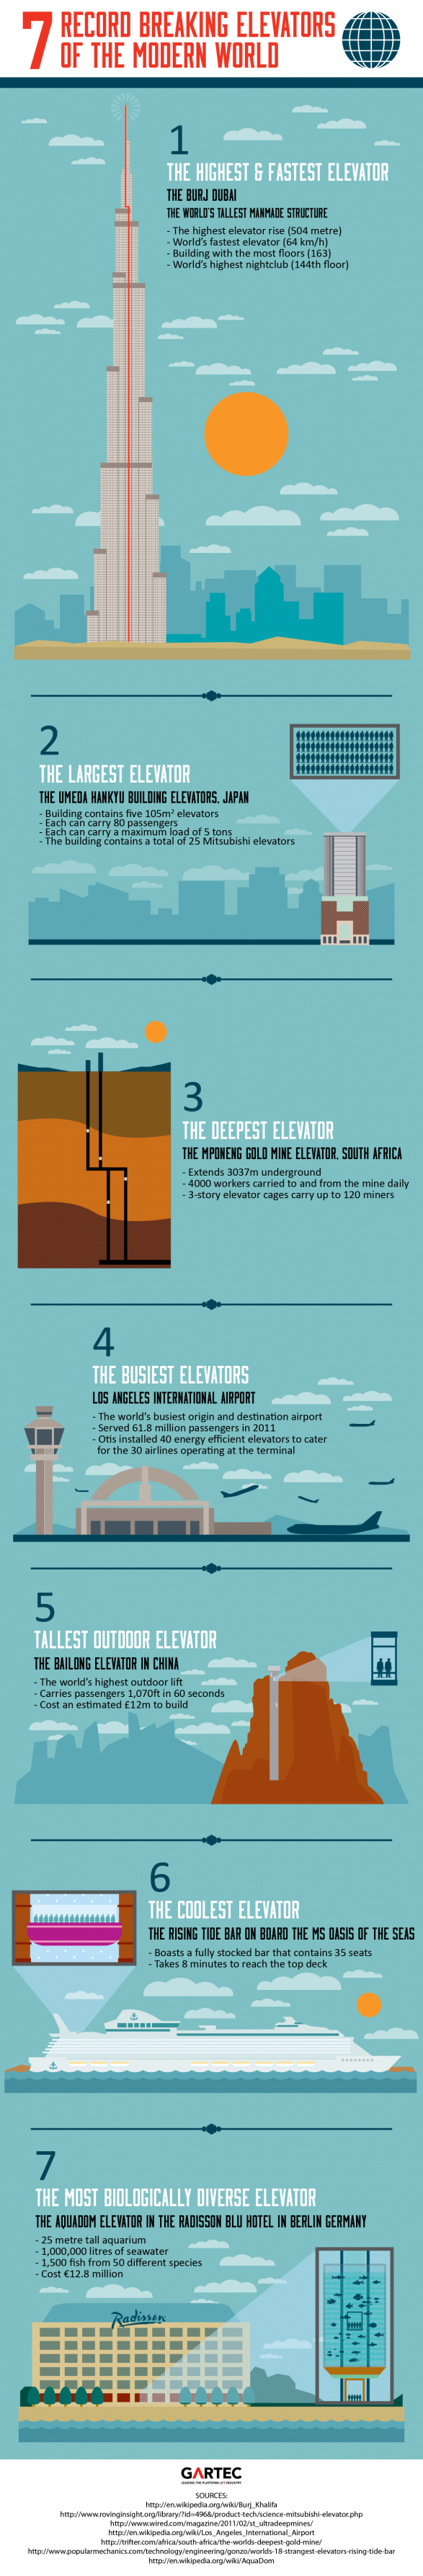 Seven Record Breaking Elevators